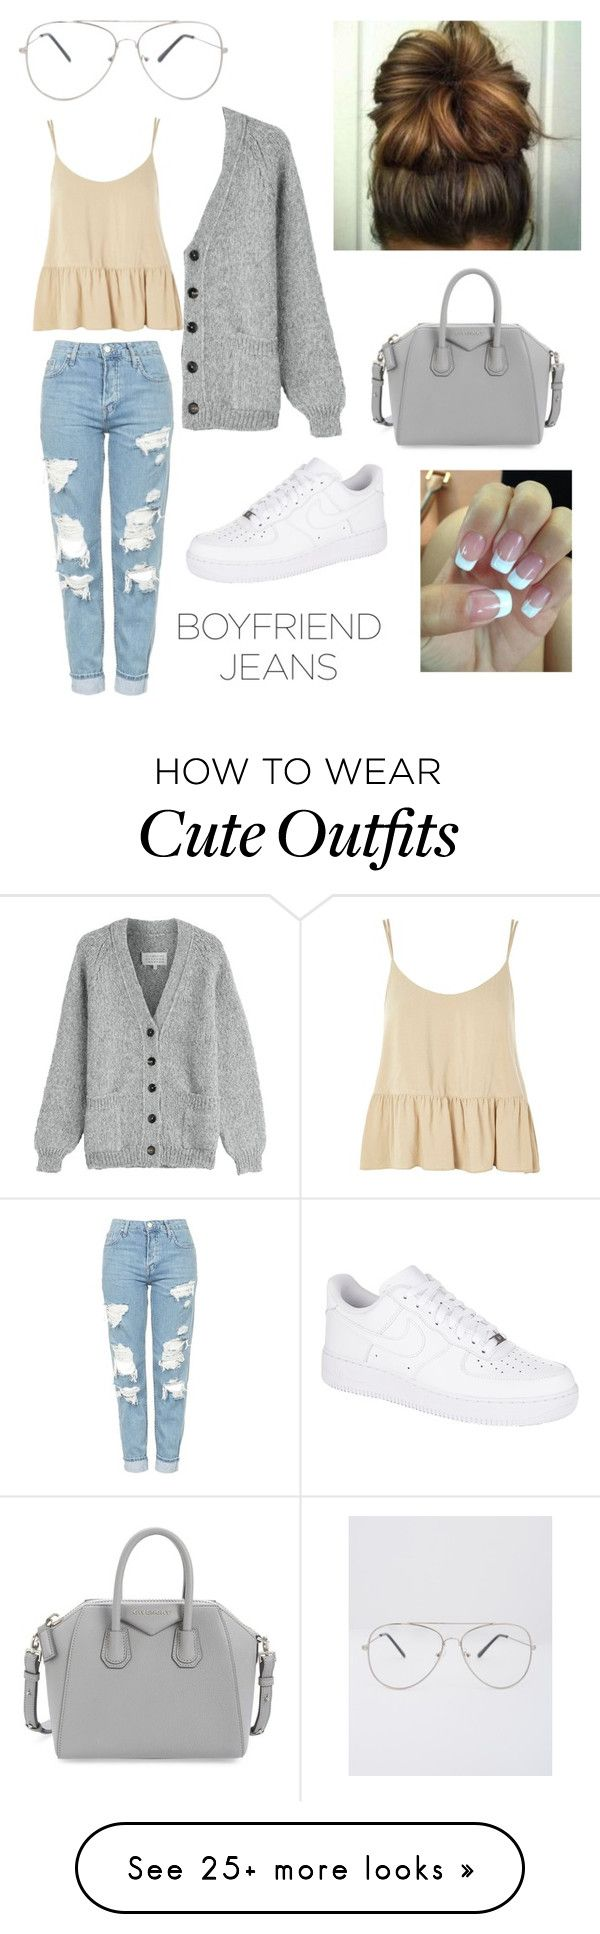 """casual but cute boyfriend jean outfit"" by elizabethanneh on Polyvore featuring Topshop, Maison Margiela, NIKE and Givenchy"